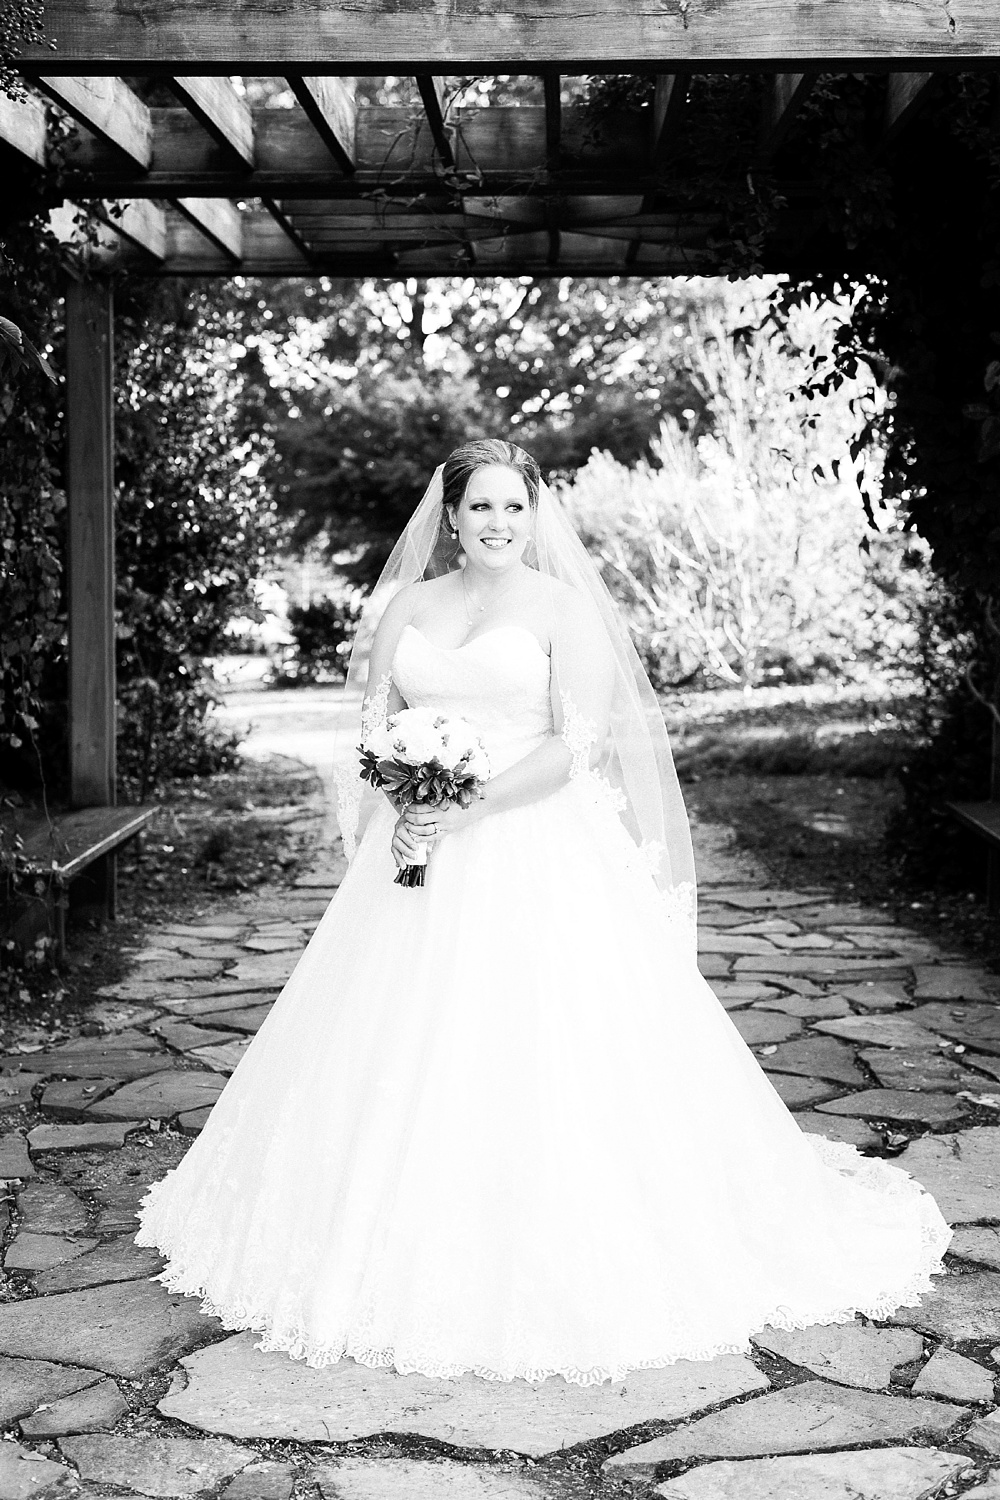 Rachael Bowman Photography-JC Raulston Arboretum-Raleigh-NC-Bridal Session-Photographer-Photos_0004.jpg